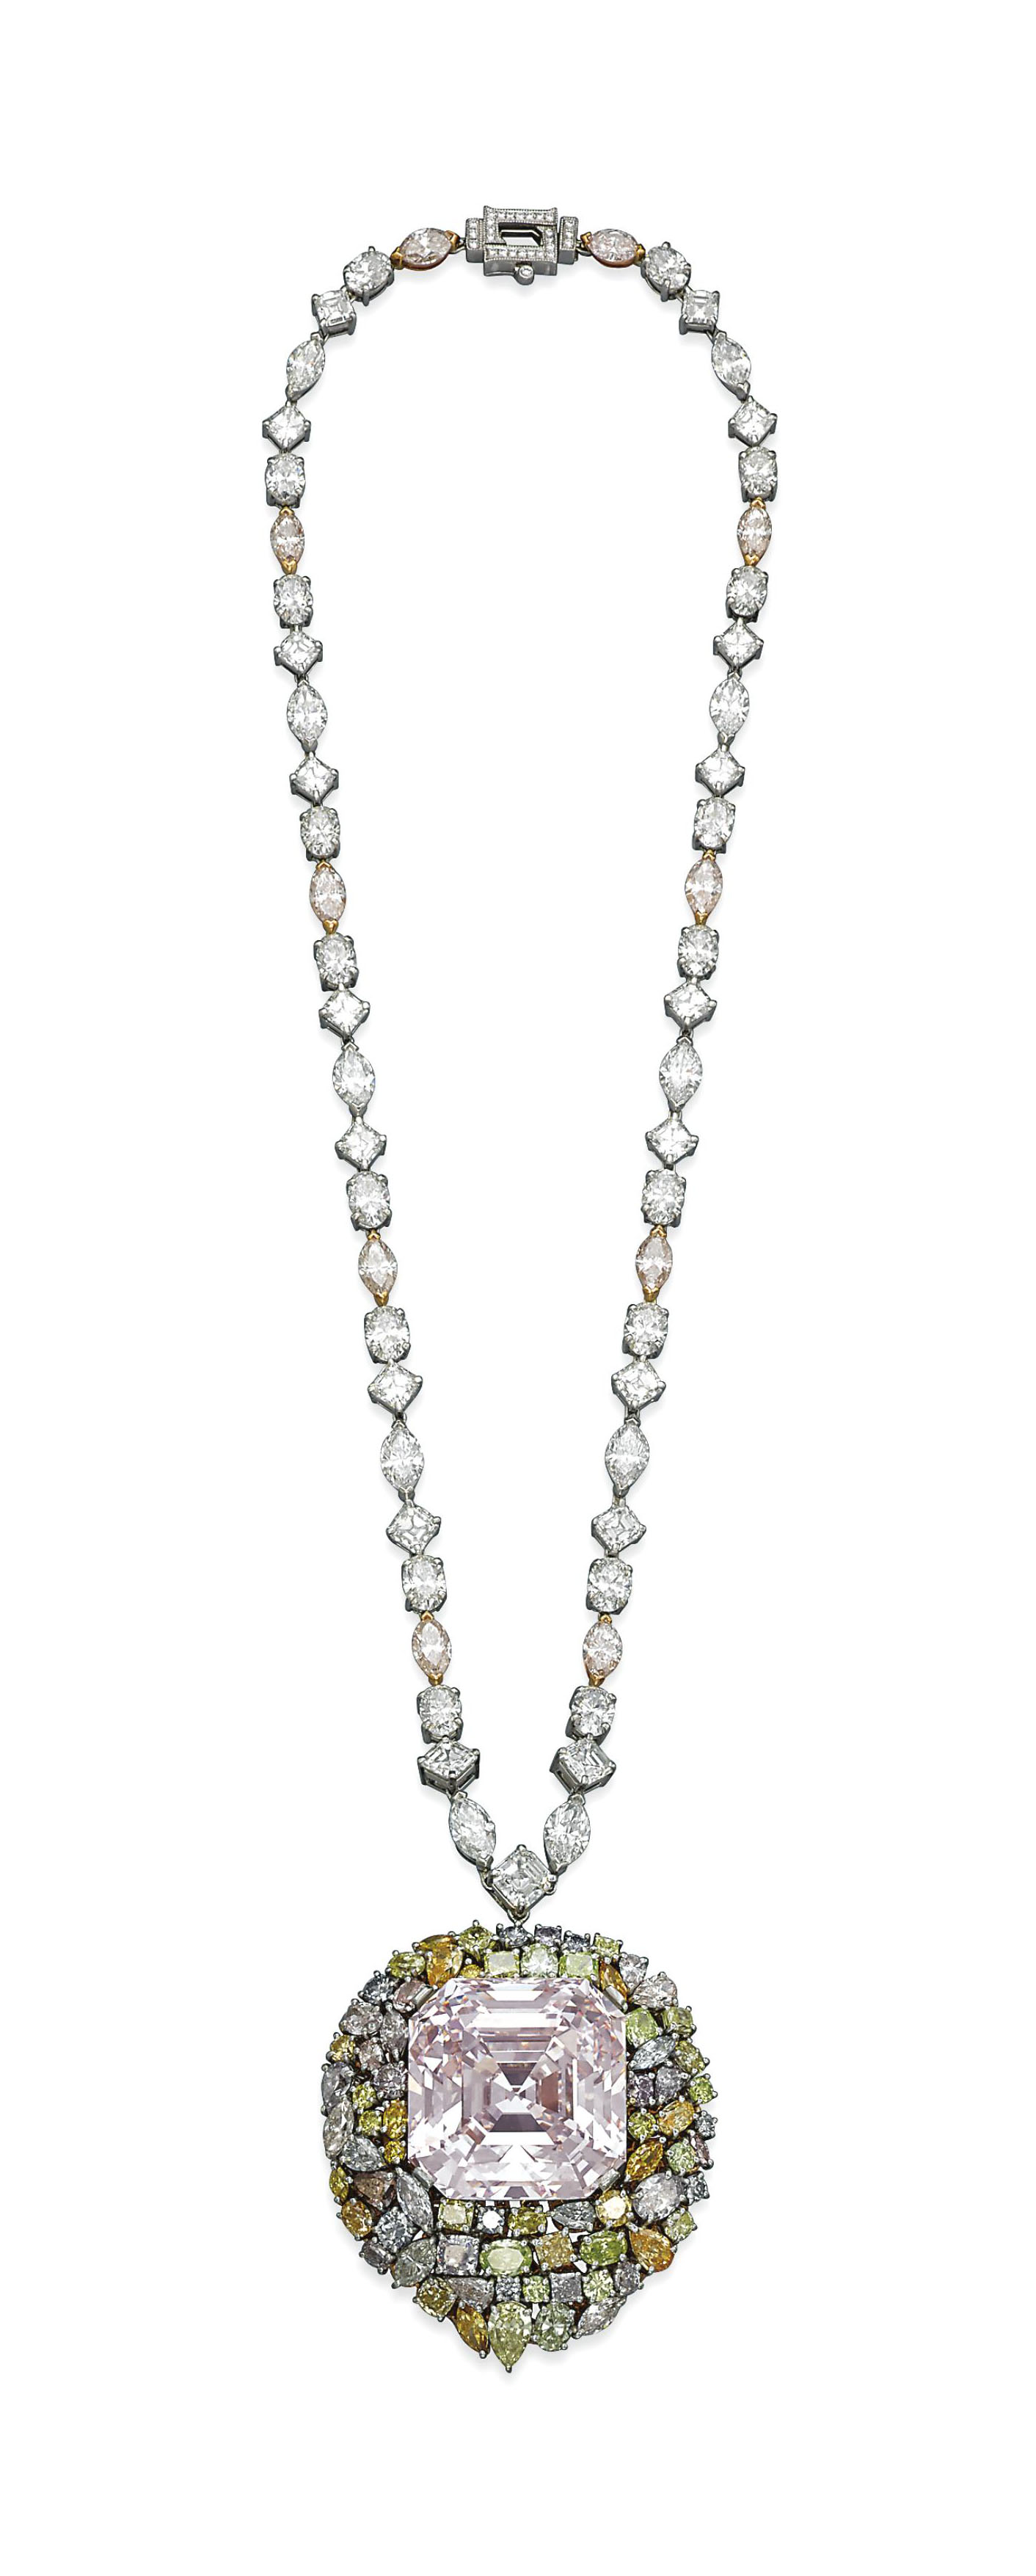 A MAGNIFICENT COLOURED DIAMOND NECKLACE, BY LEVIEV